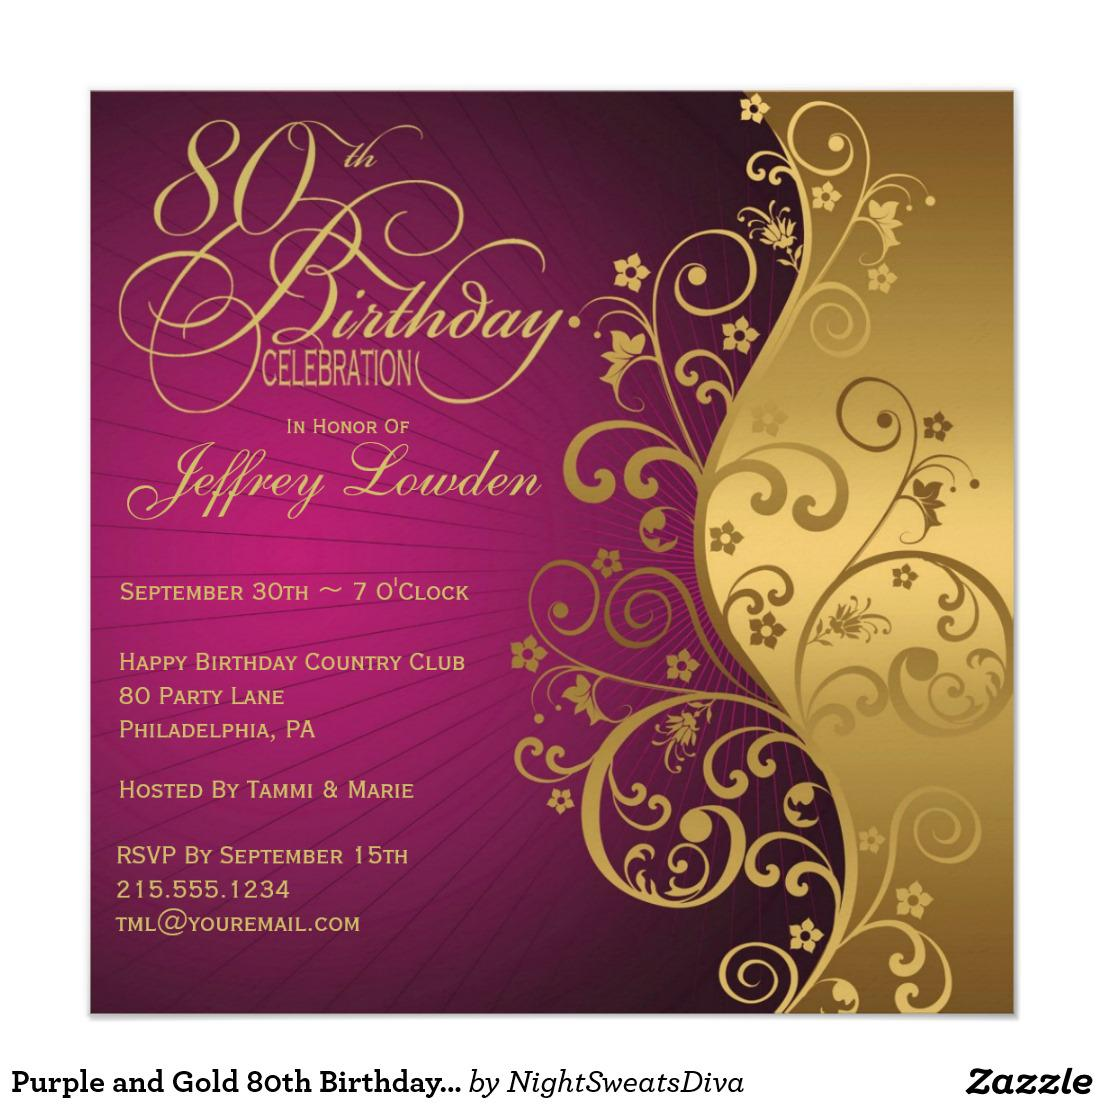 15 sample 80th birthday invitations templates ideas free sample 80th birthday party invitations purple and gold invitation luxury cards celebrations womens samples stopboris Images